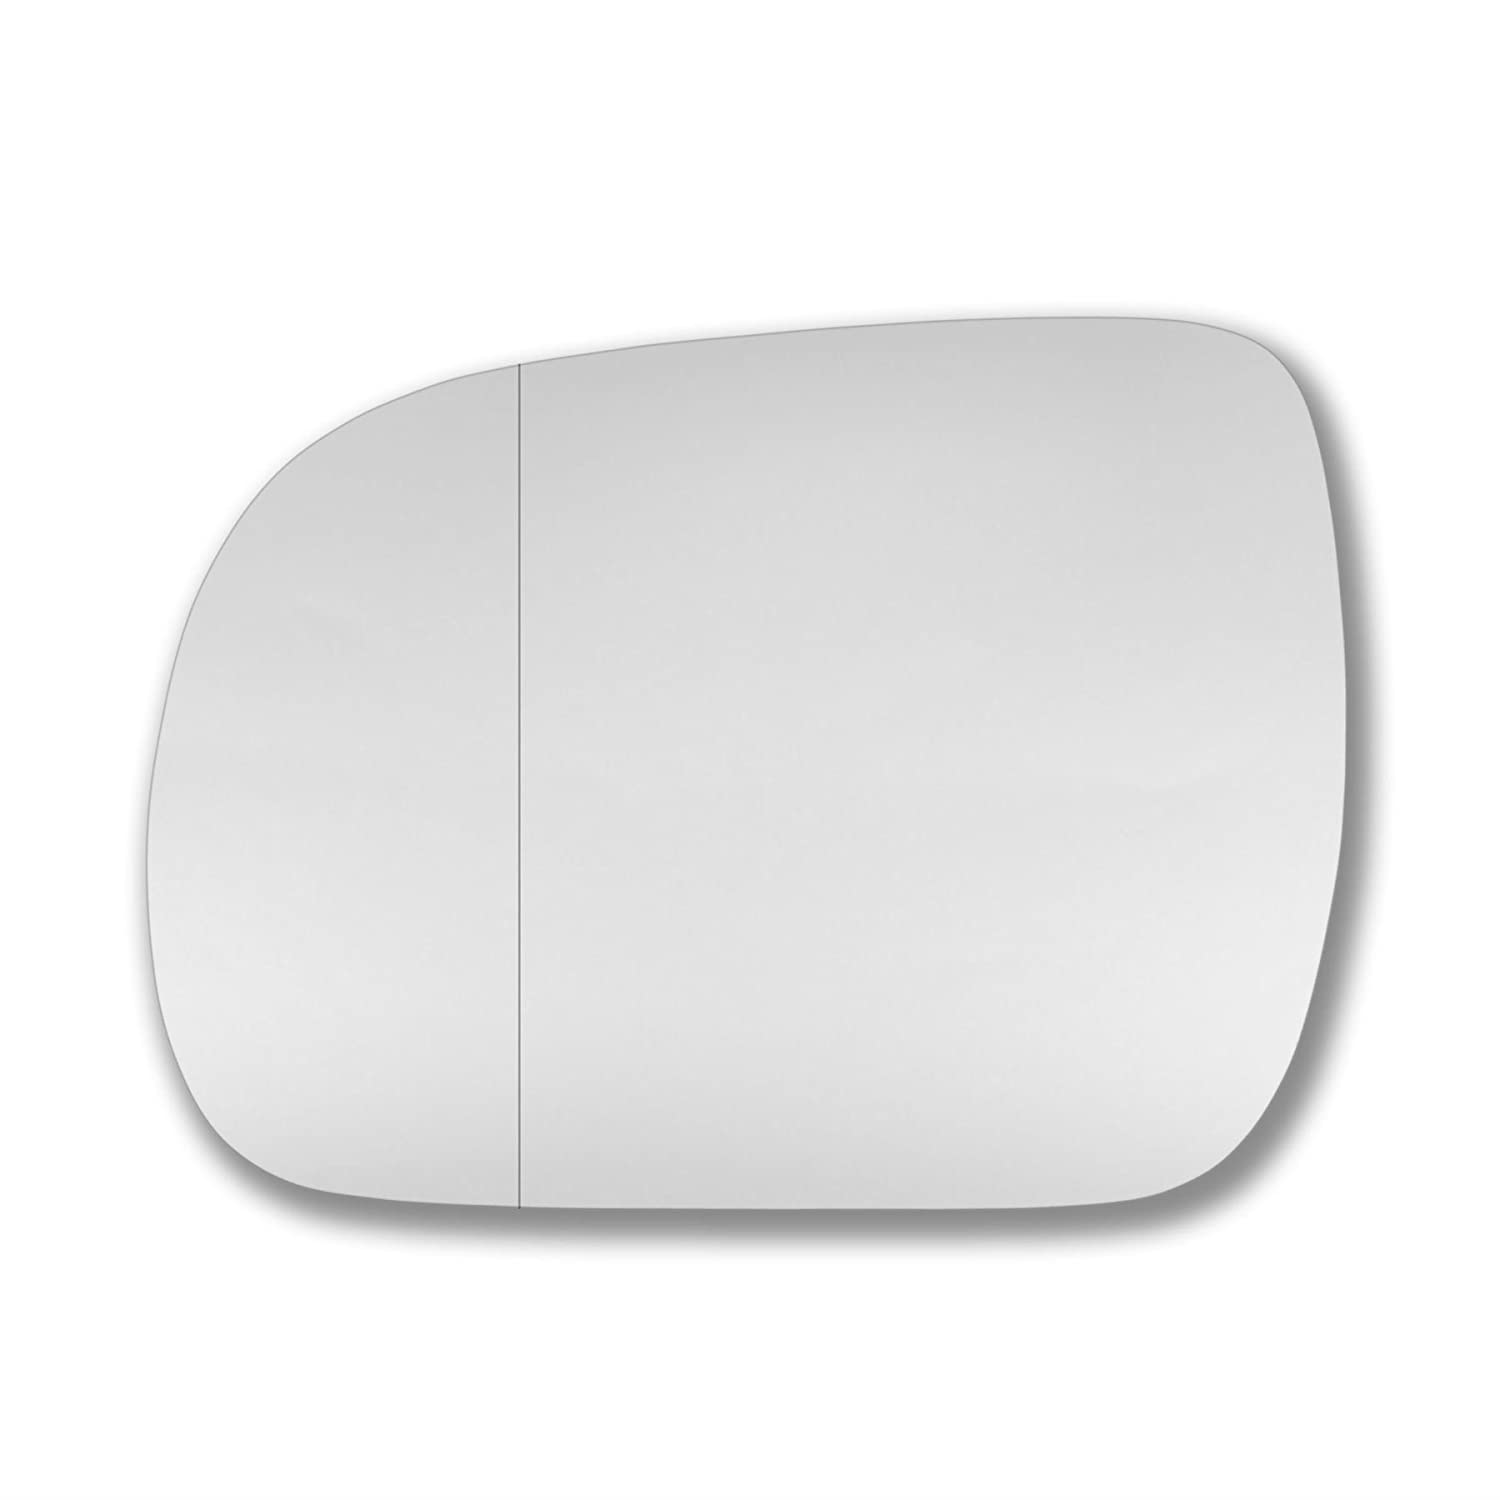 LeRx Left side wing mirror glass Real glass,door stick on mirror replacement Passenger side quick fix silver #LeRx-03//09-L/_wa